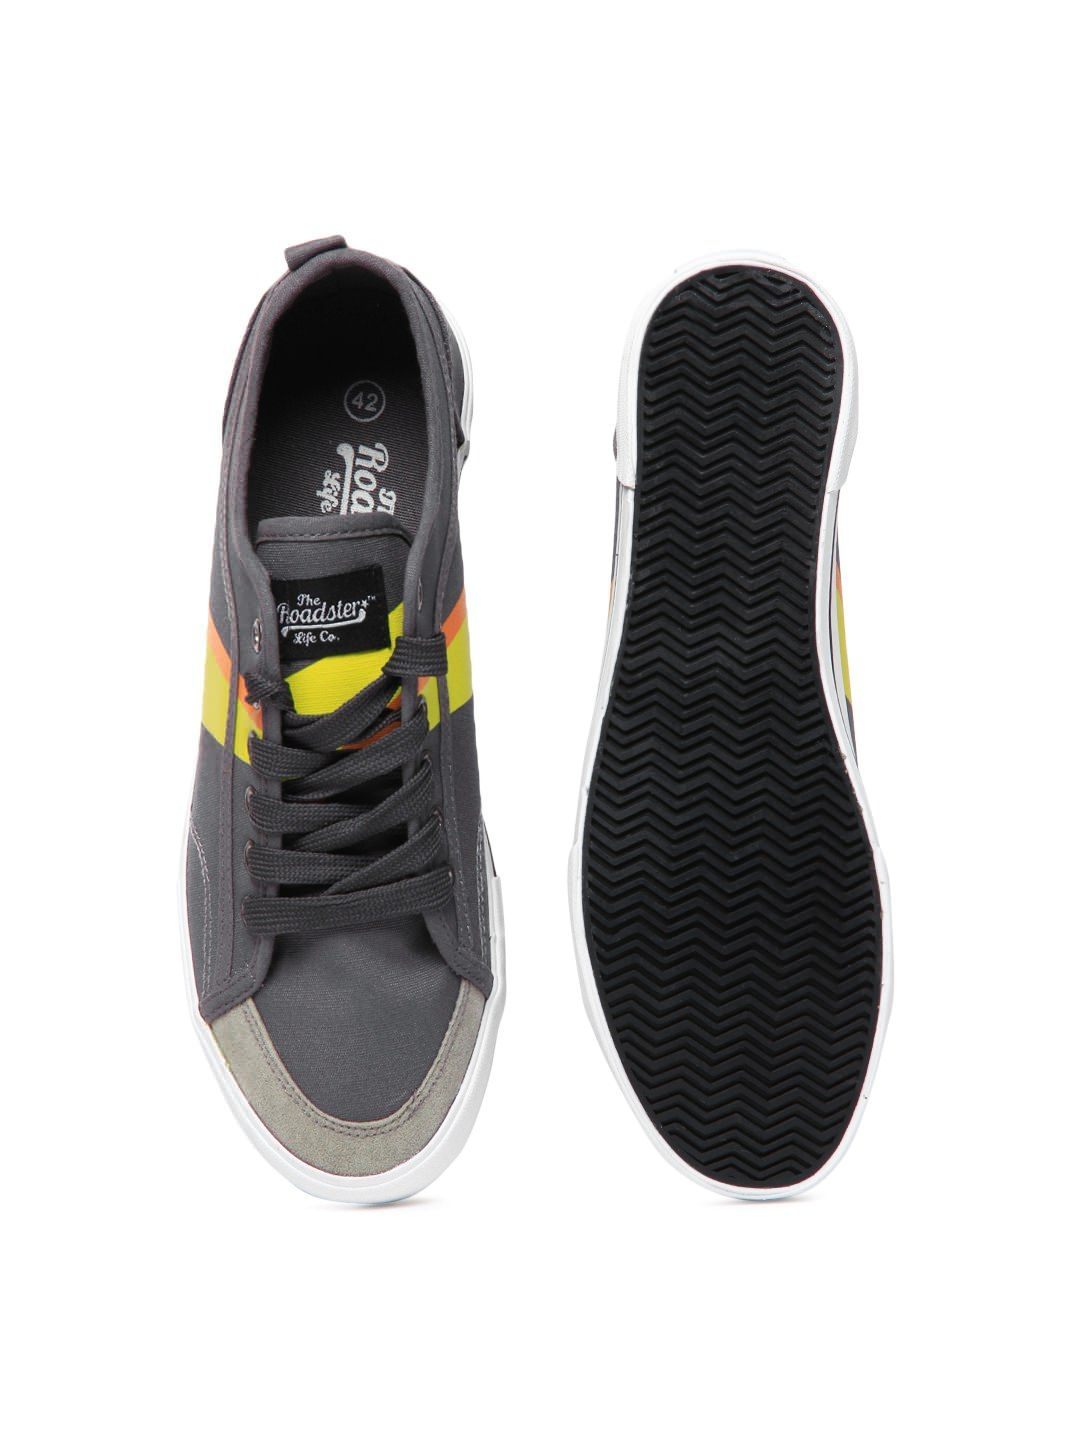 Roadster Men Grey Casual Shoes. Crafted